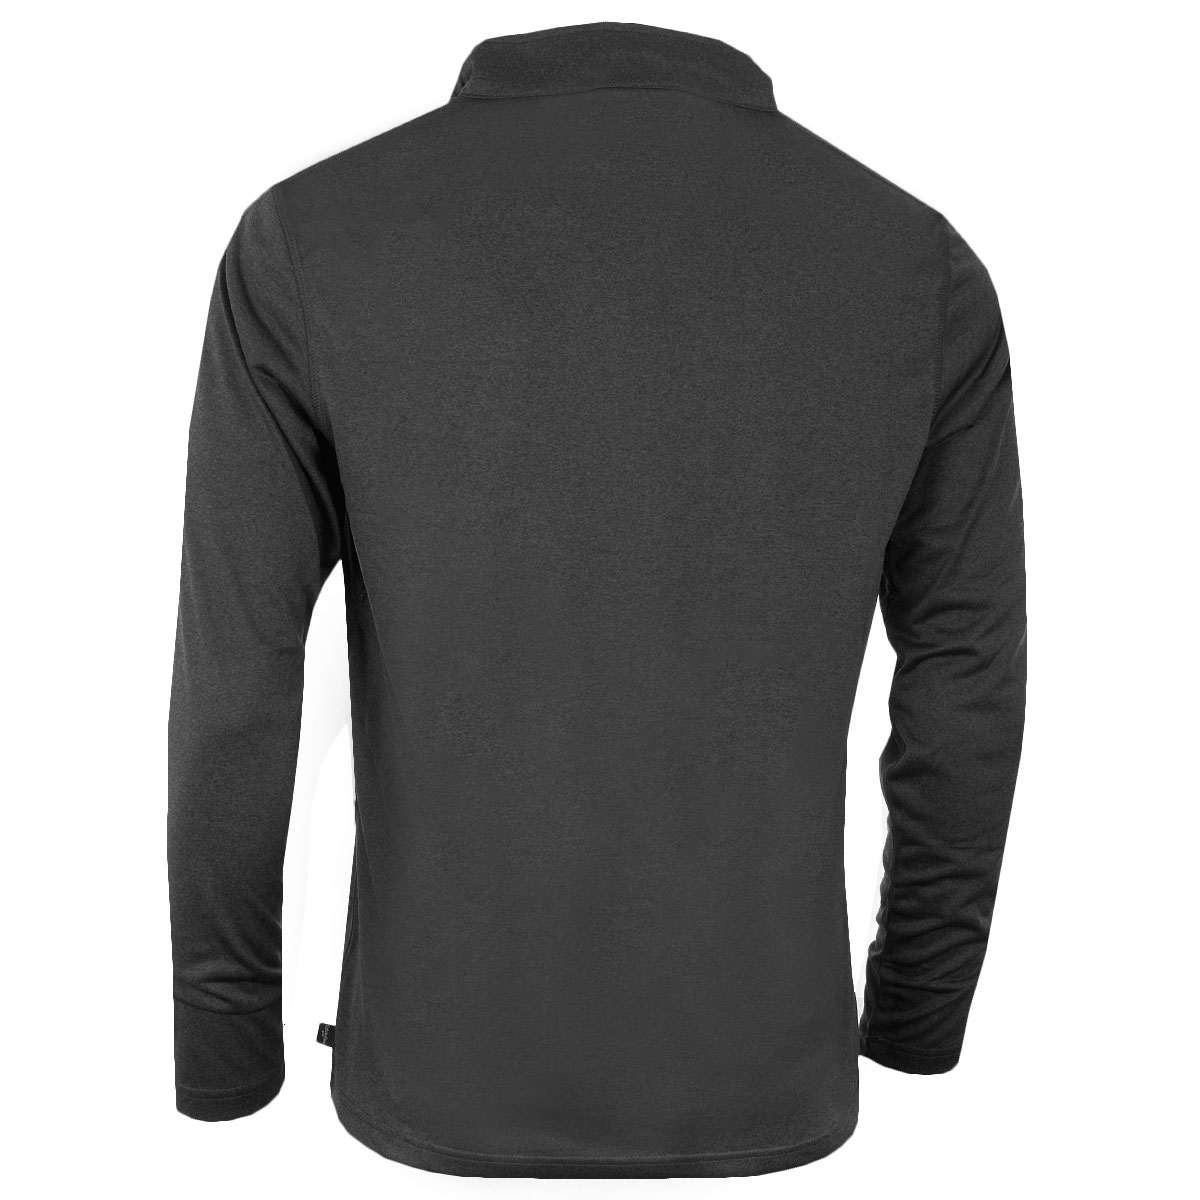 Calvin-Klein-Golf-Mens-2019-Harlem-1-4-Zip-Technical-CK-Sweater-28-OFF-RRP thumbnail 11